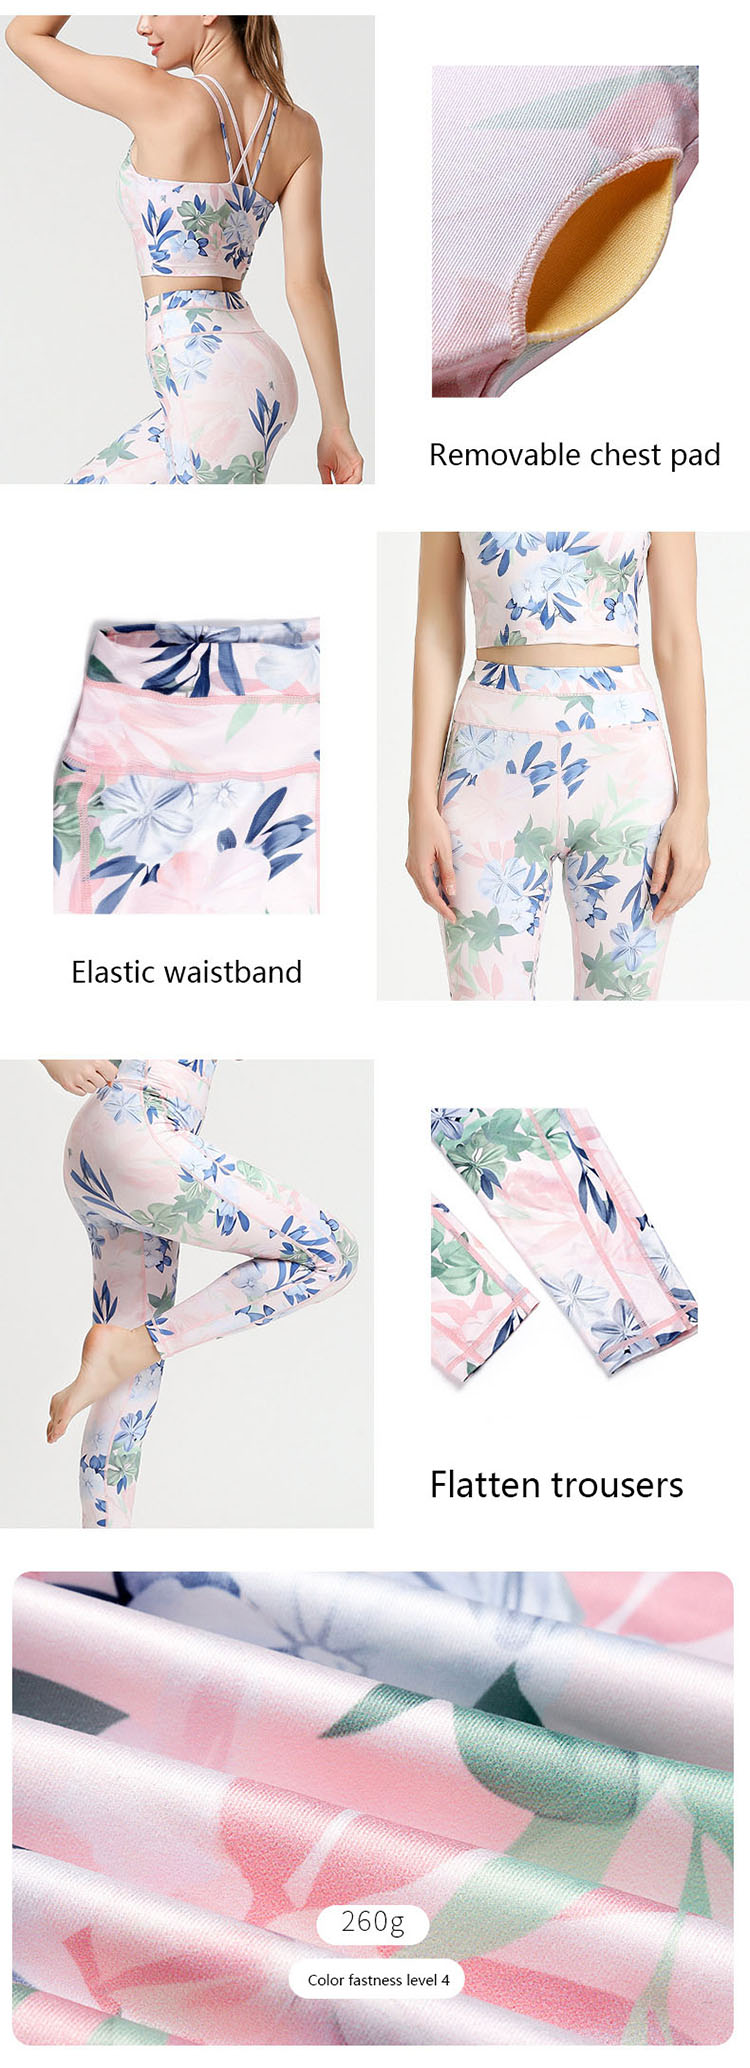 Flower yoga pants is a relatively common process in women's clothing design